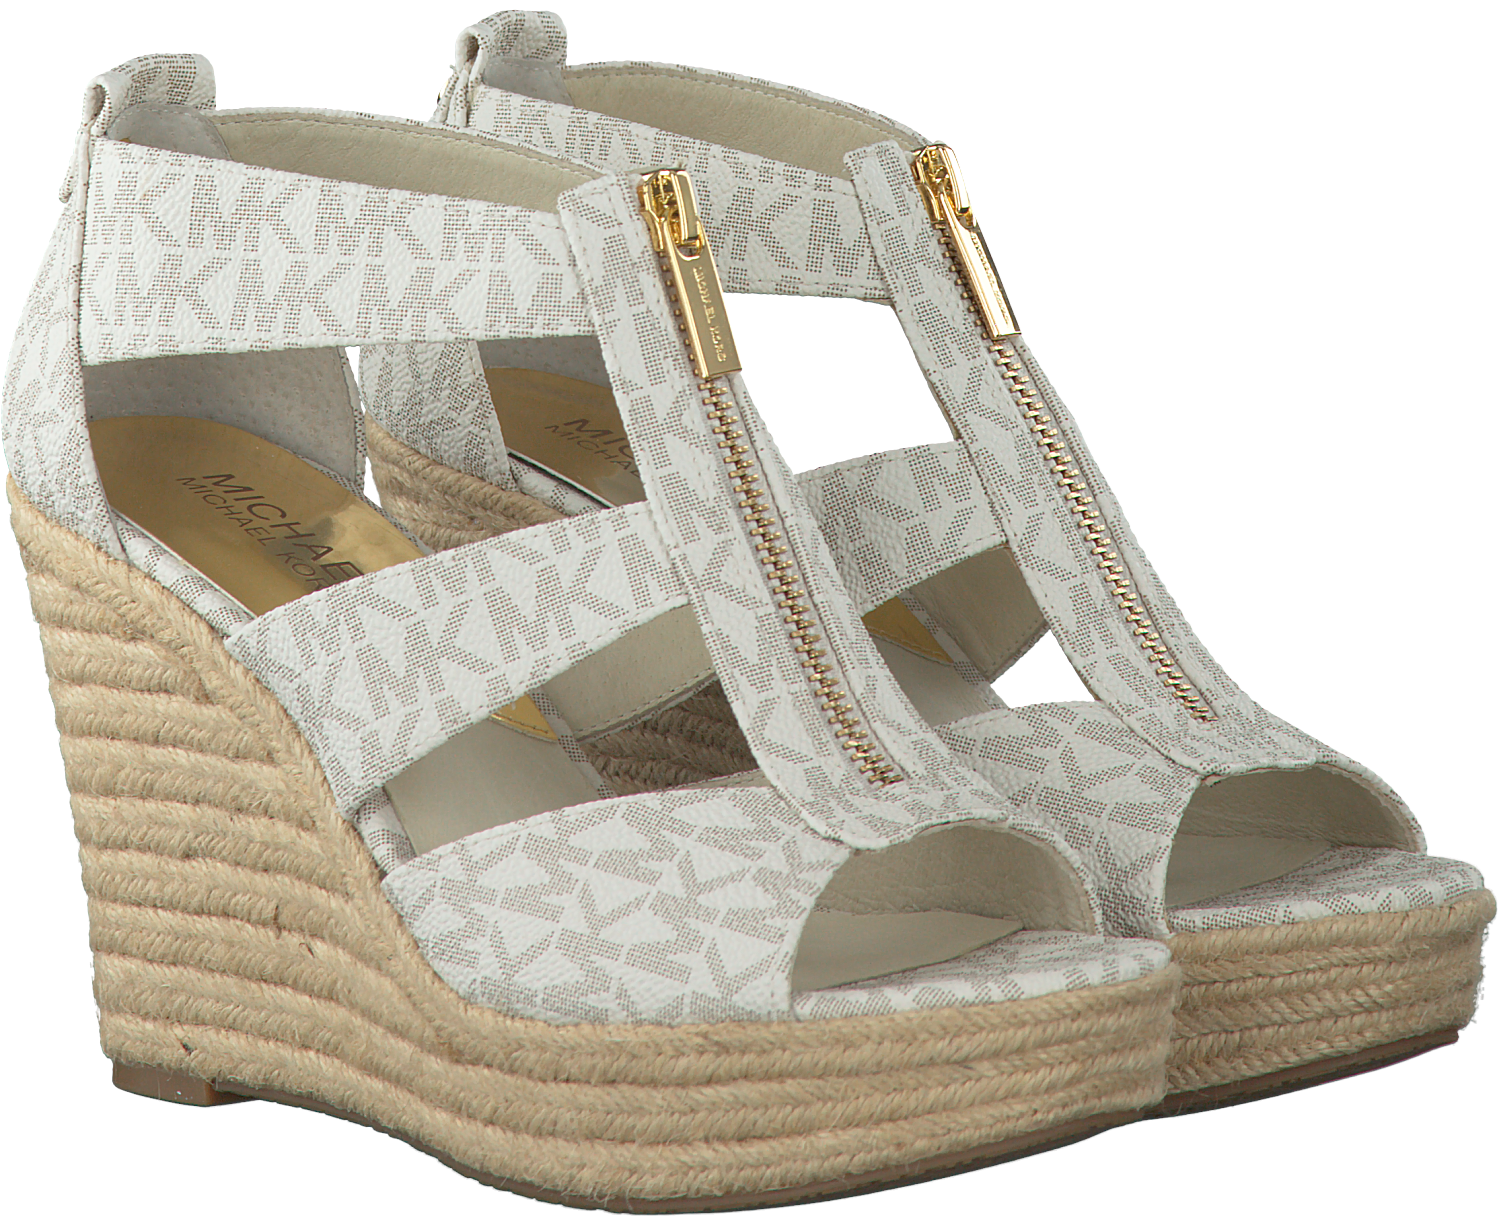 139a45b538a Witte MICHAEL KORS Sandalen DAMITA WEDGE - large. Next